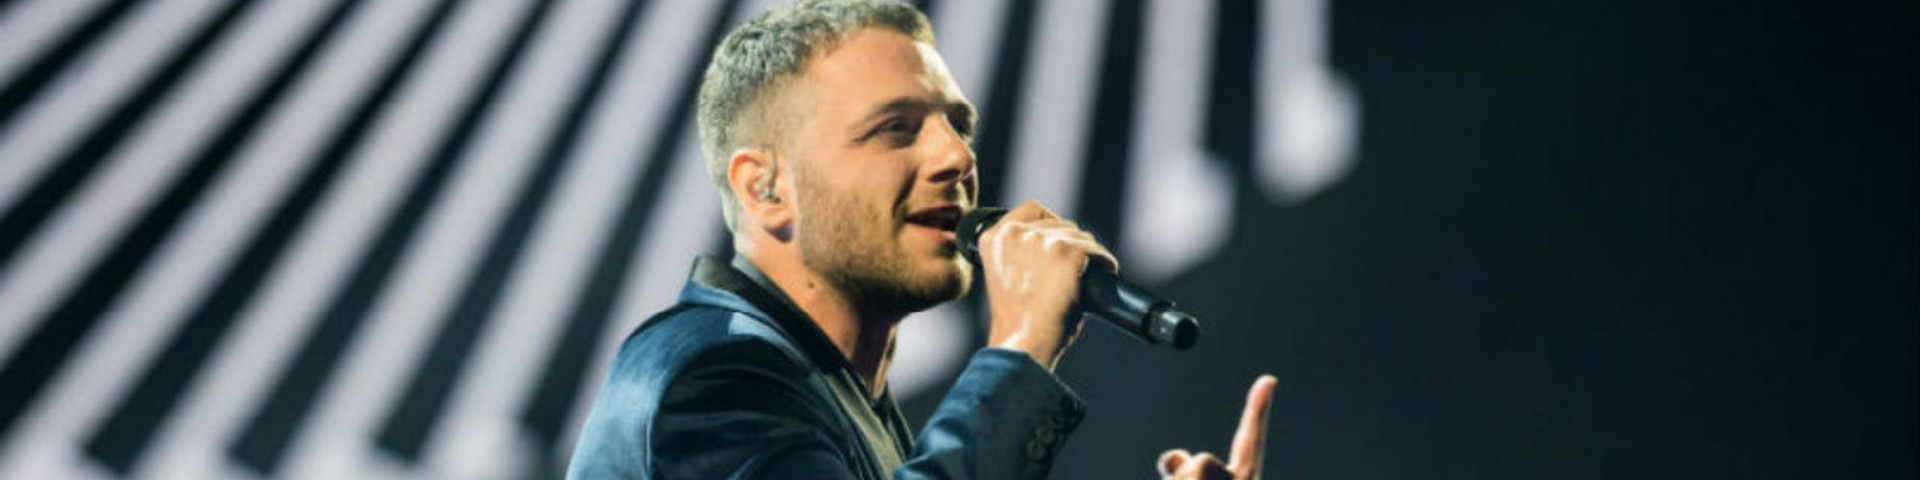 Anastasio è il vincitore di X Factor 12 – Video